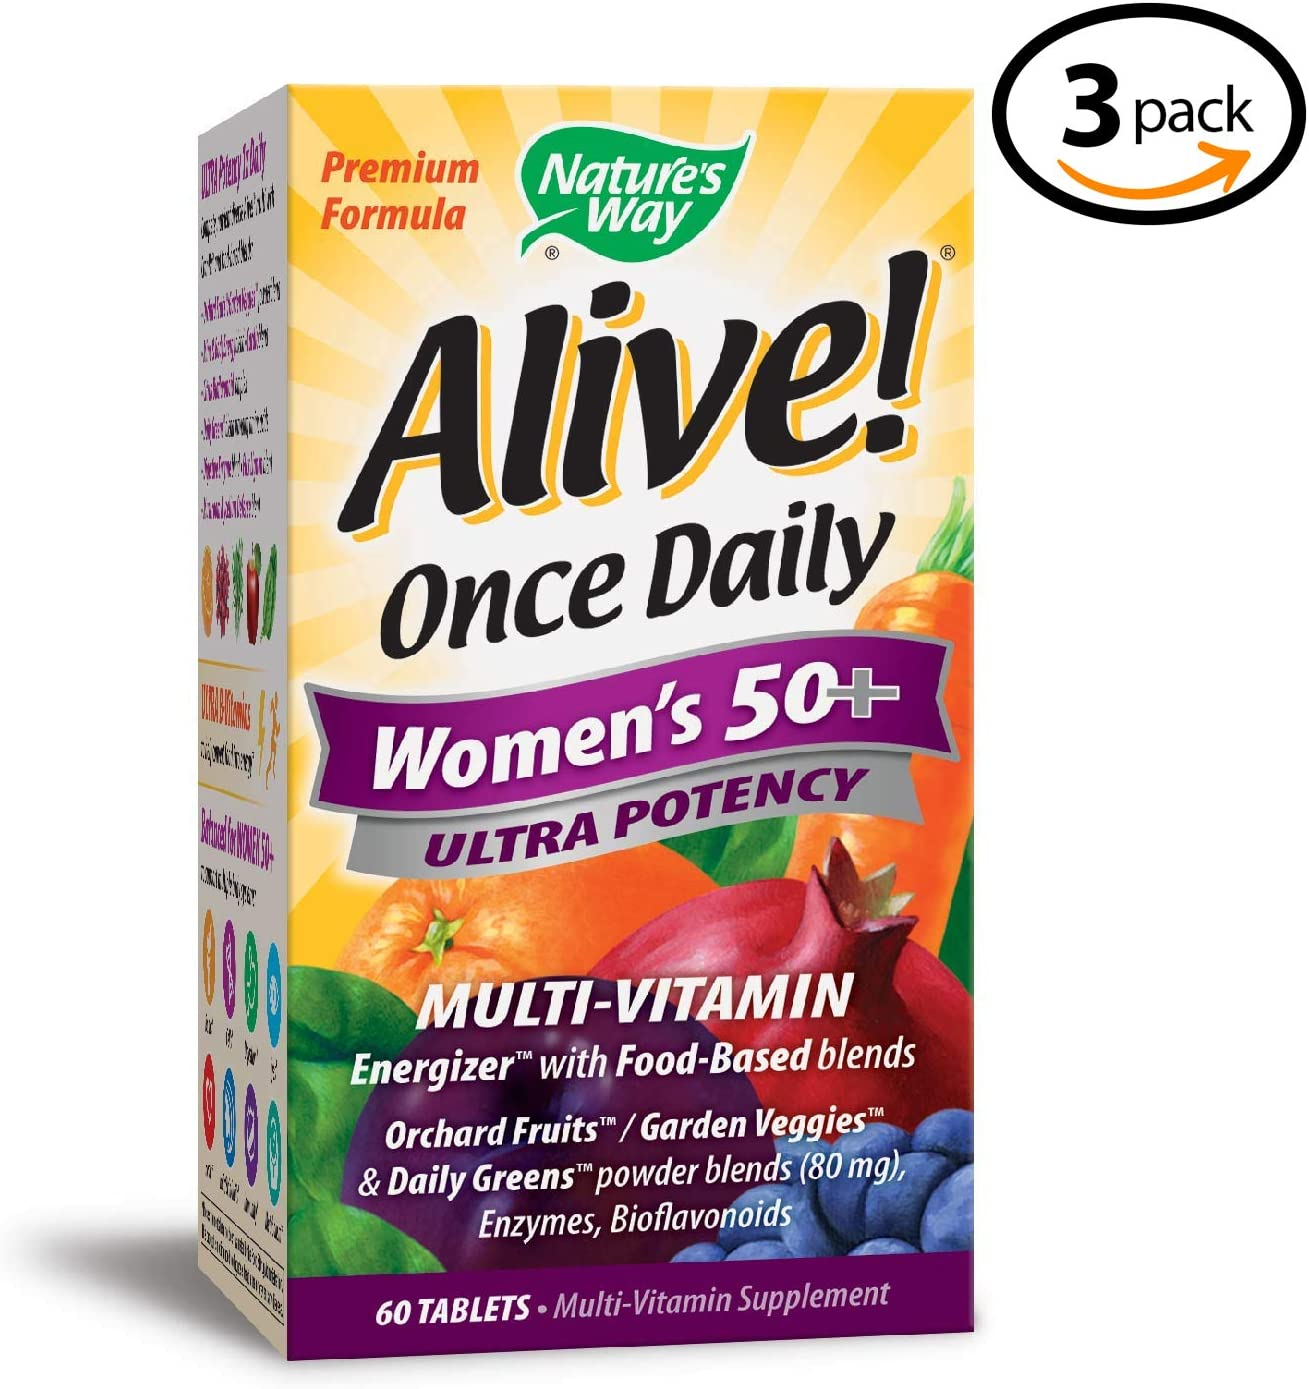 Nature's Way Alive! Once Daily Women's 50+ Multivitamin, Ultra Potency, Food-Based Blends (80mg per Serving), 60 Tablets - 3 Pack